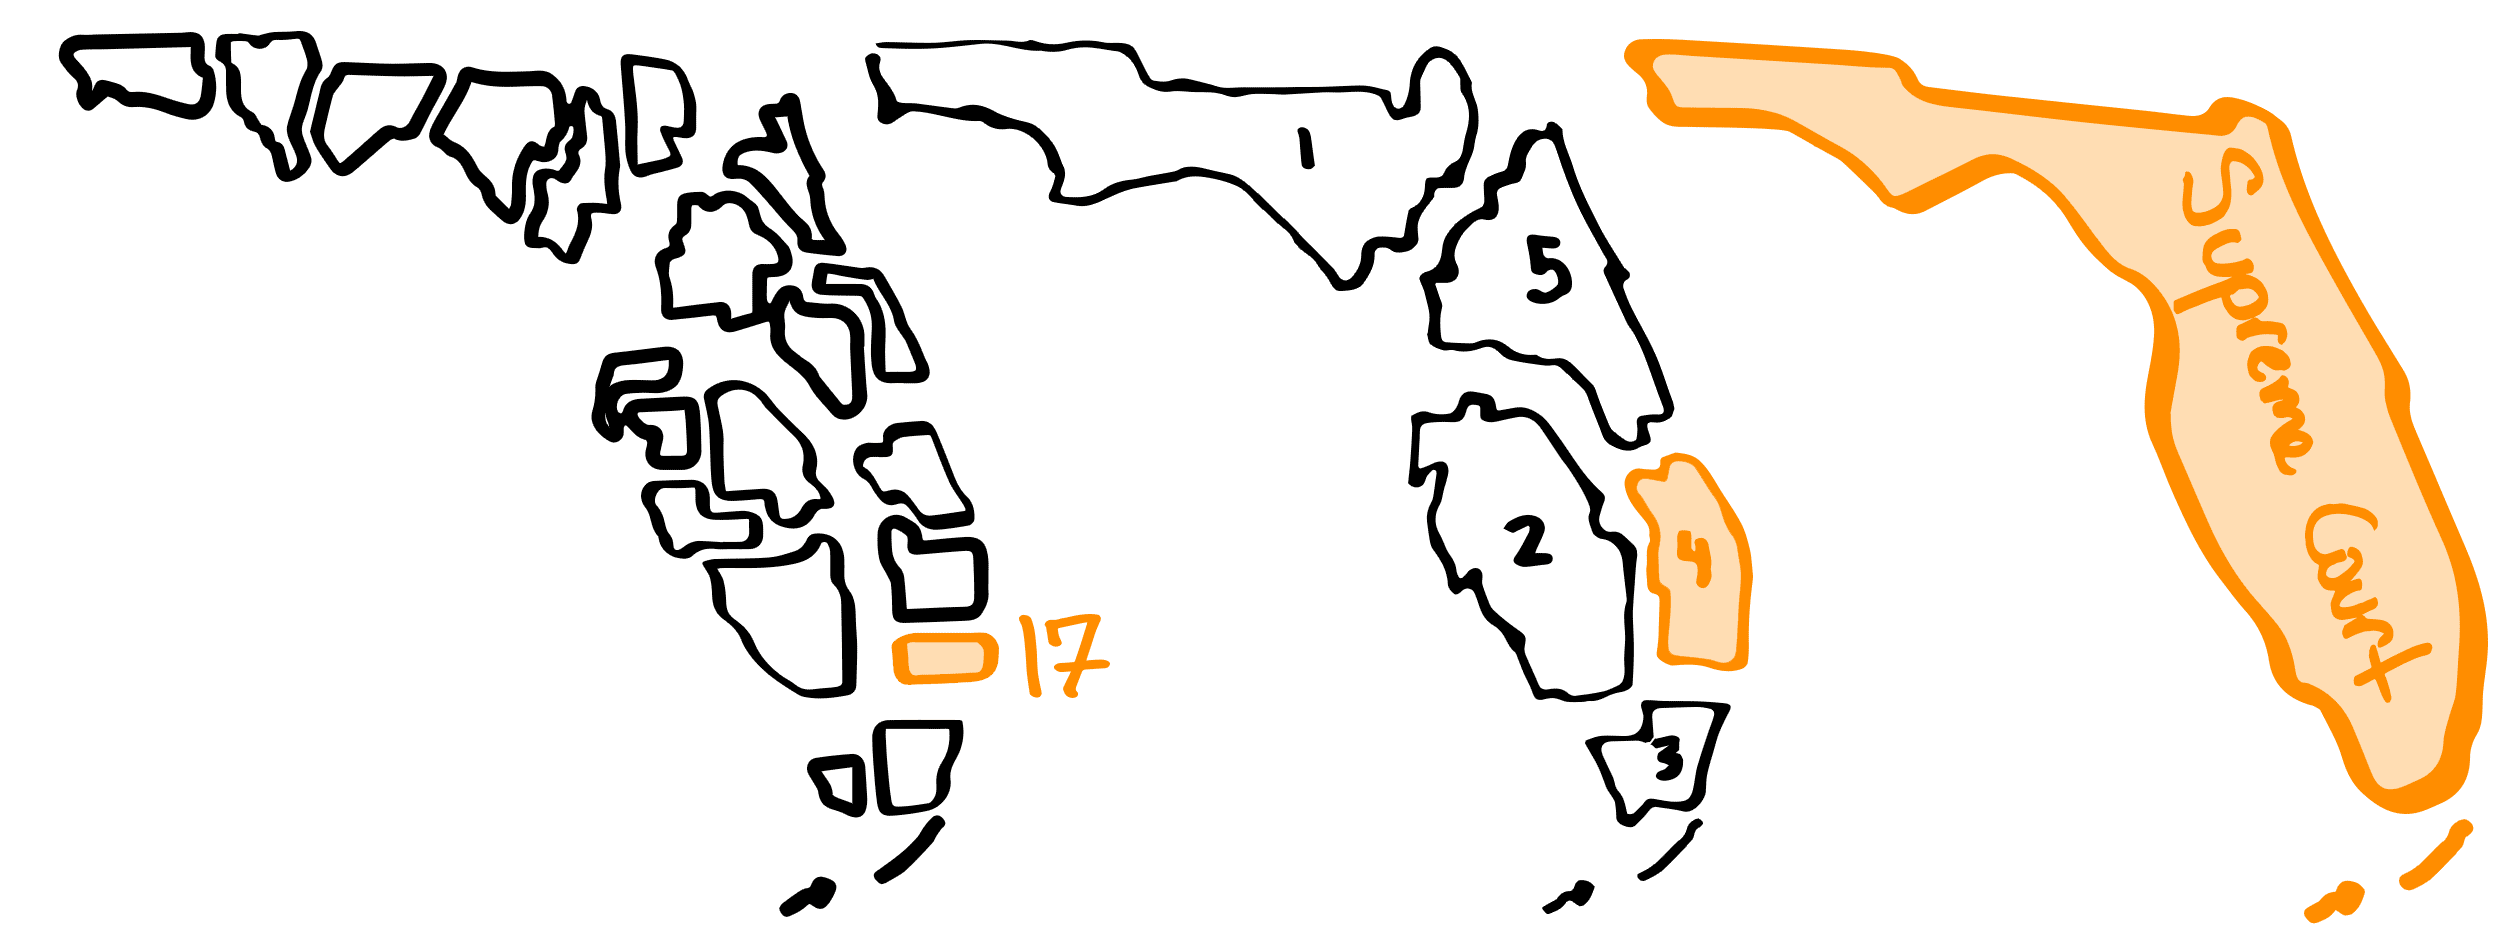 Map of Circuits and Districts of Florida Courts